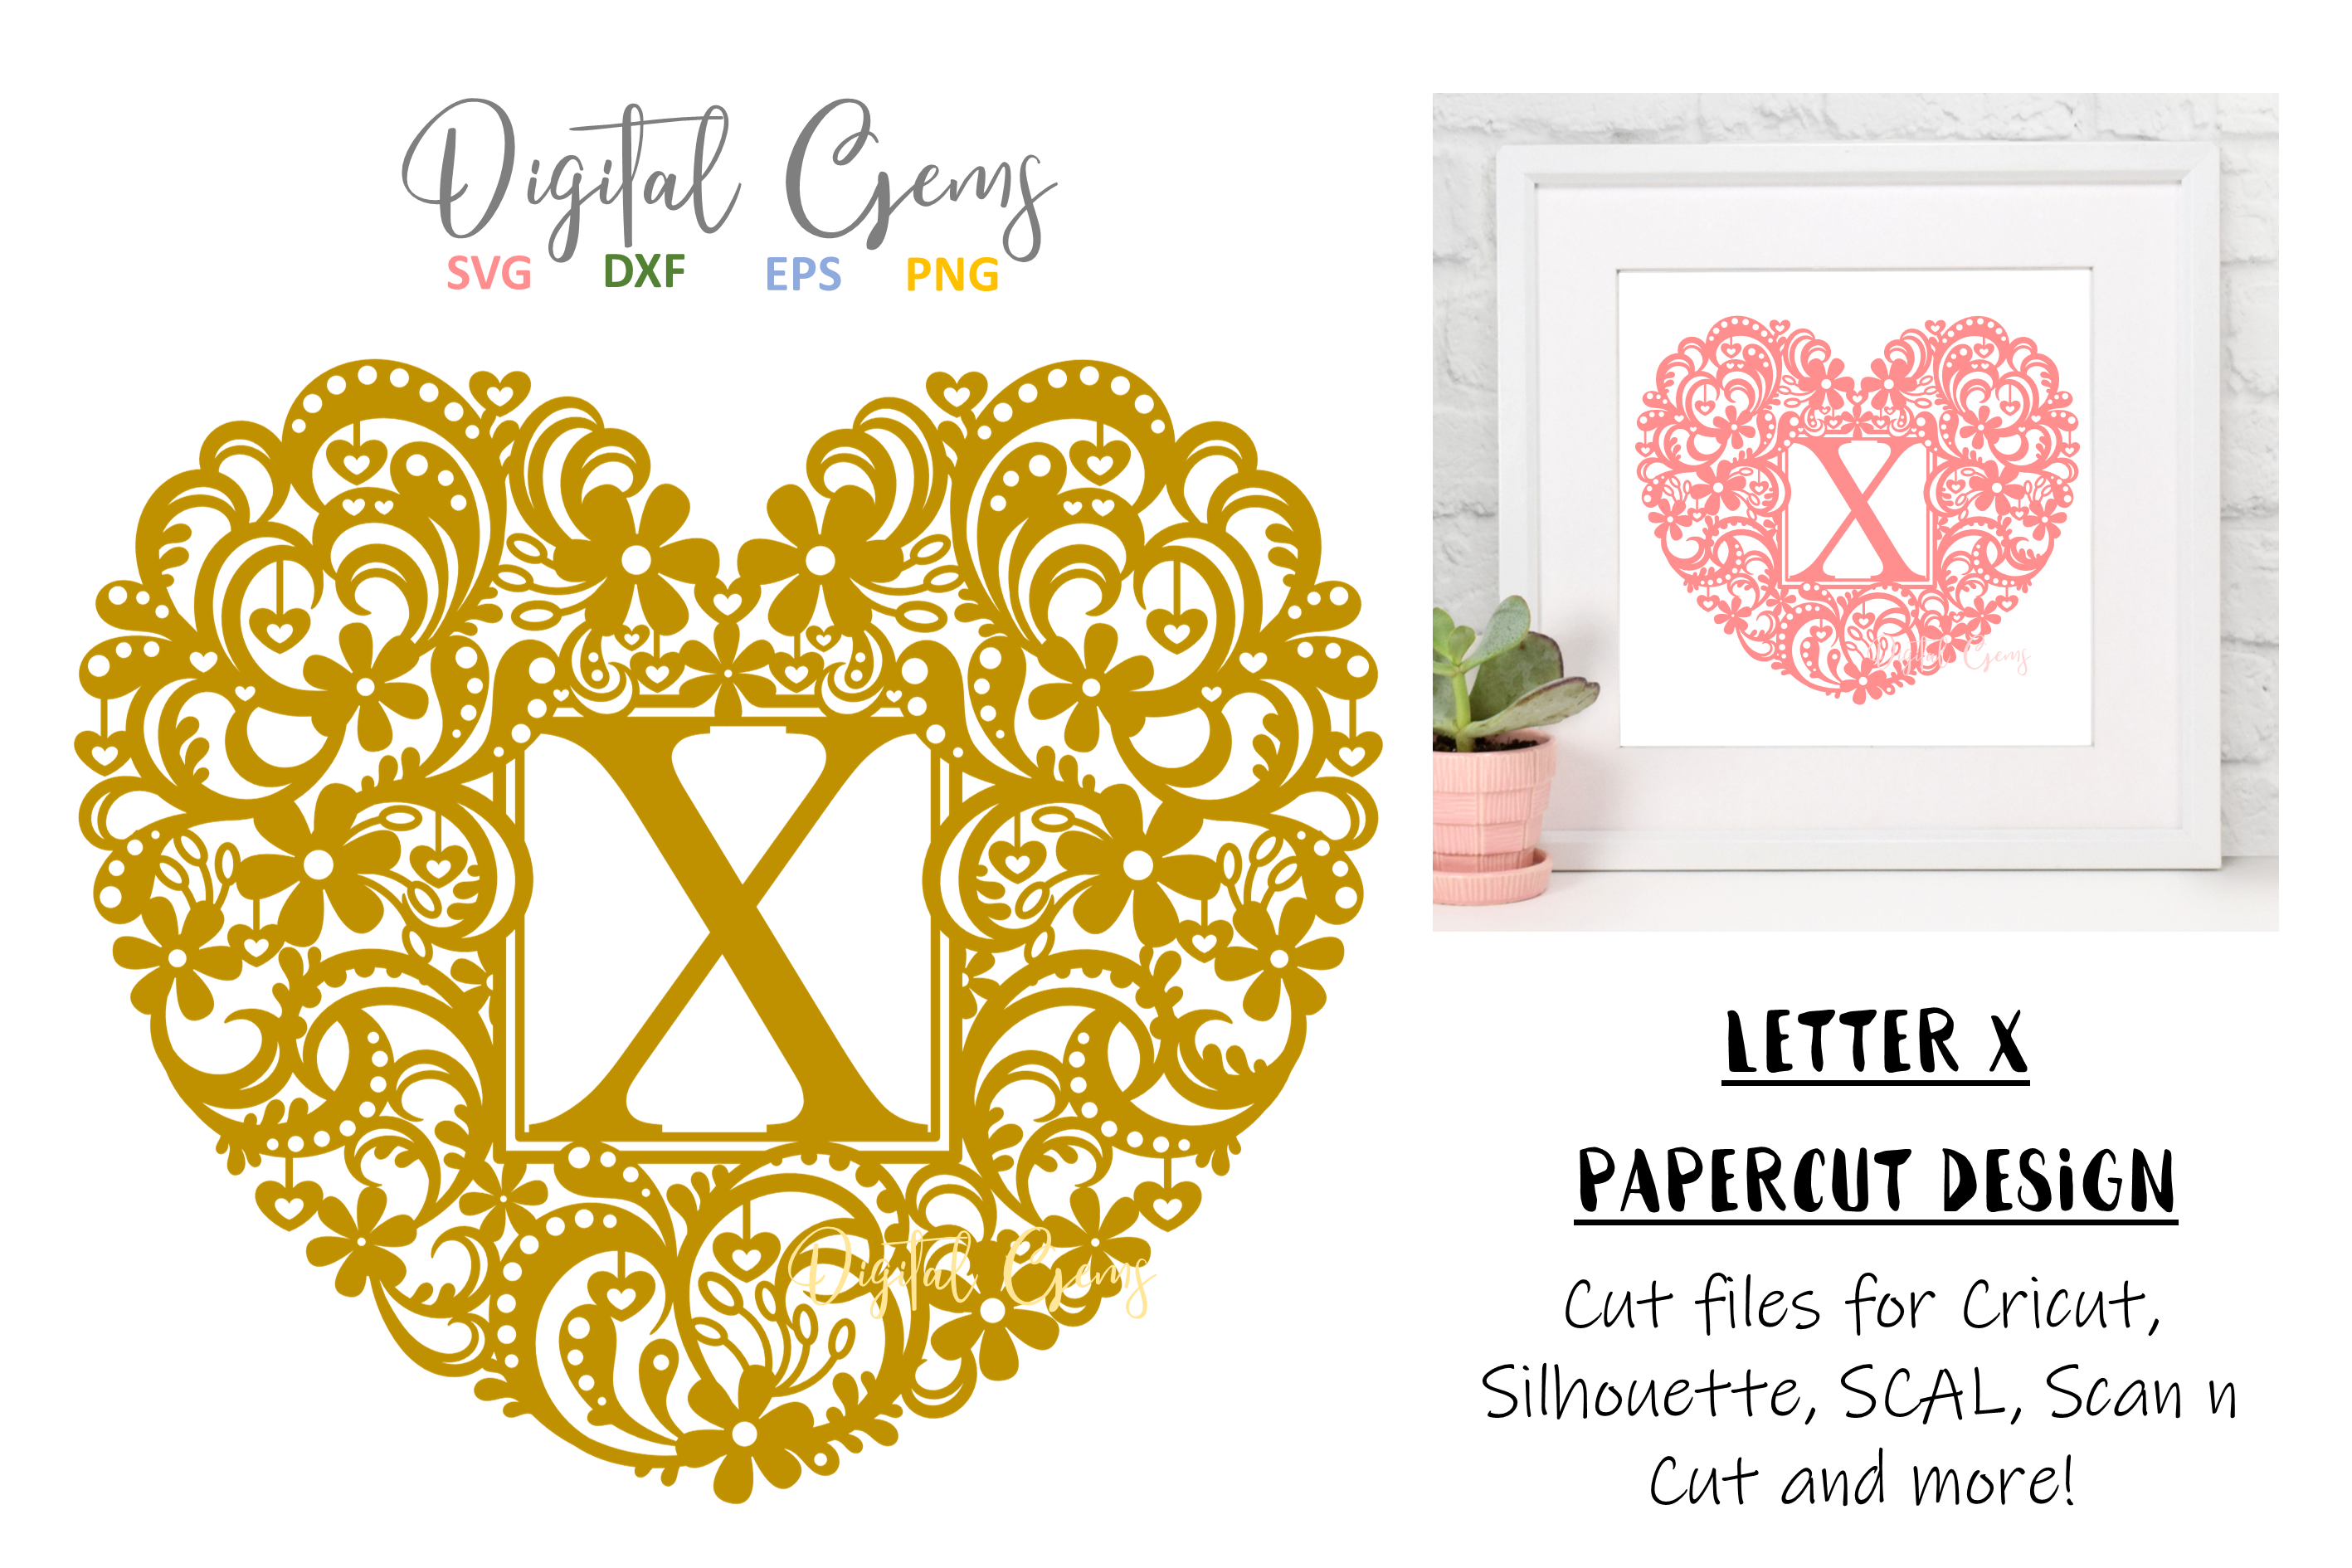 Letter X paper cut design. SVG / DXF / EPS / PNG files example image 1